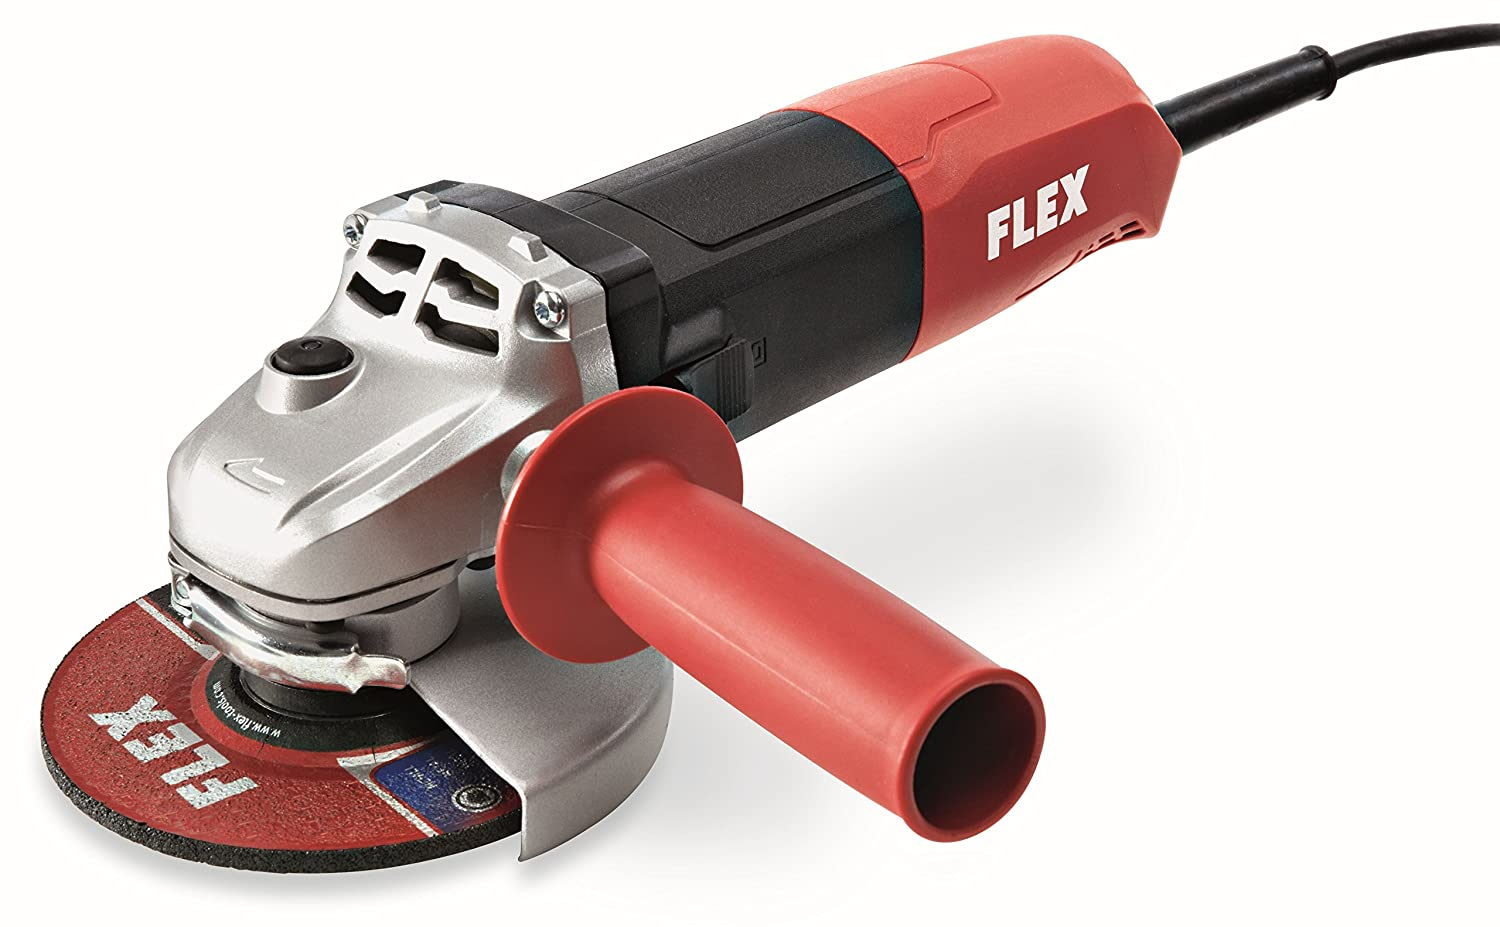 Flex  L Angle Grinder  W Amazon Co Uk Business Industry Science